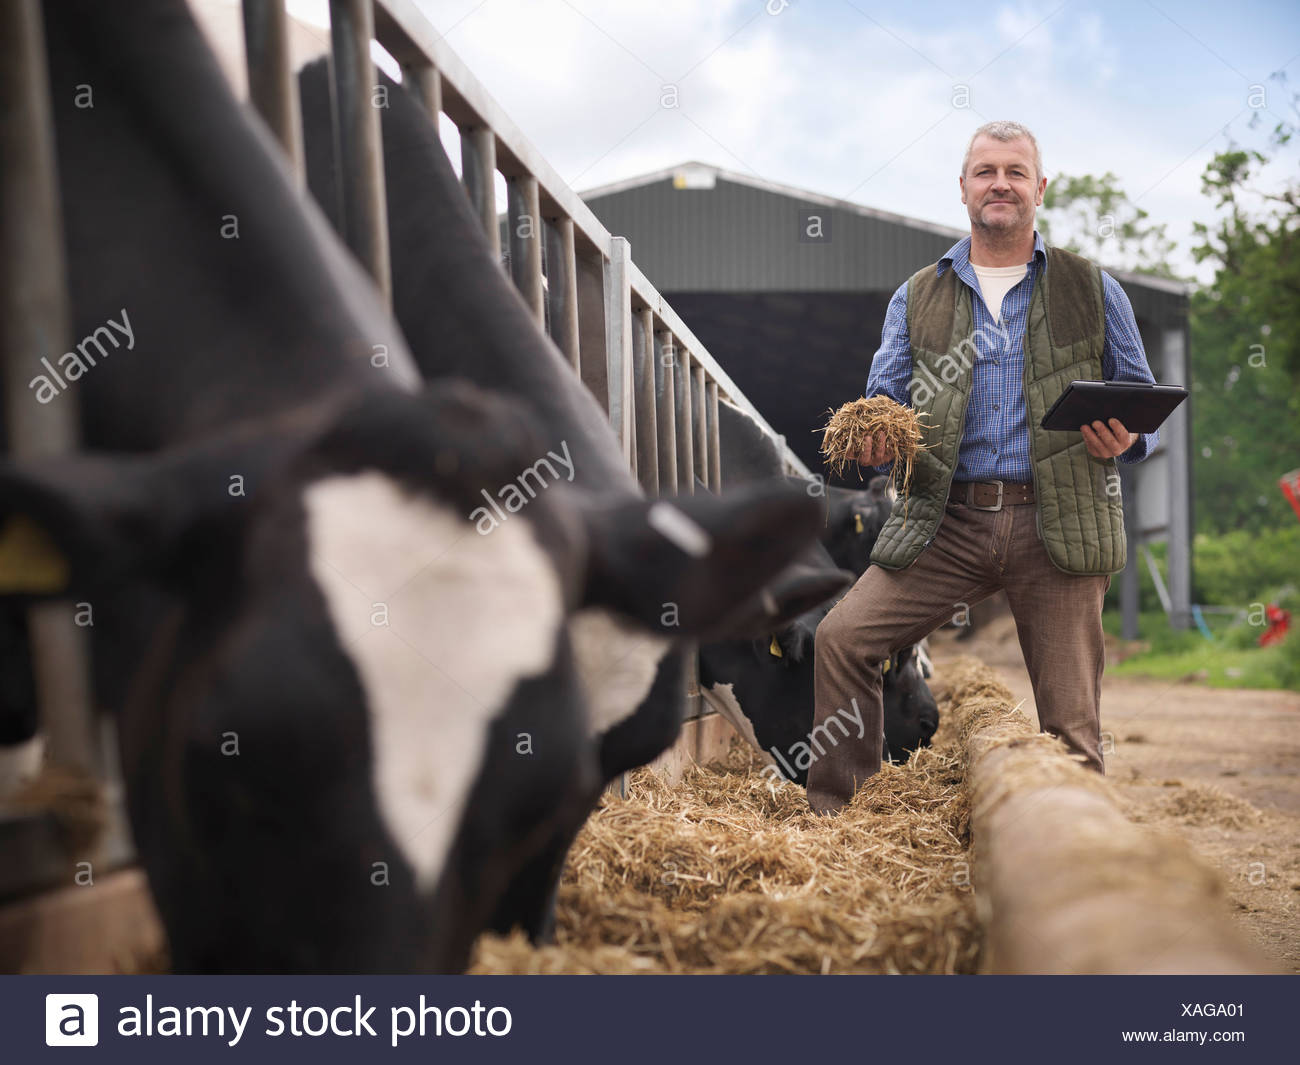 Farmer examining cow feed in barn - Stock Image